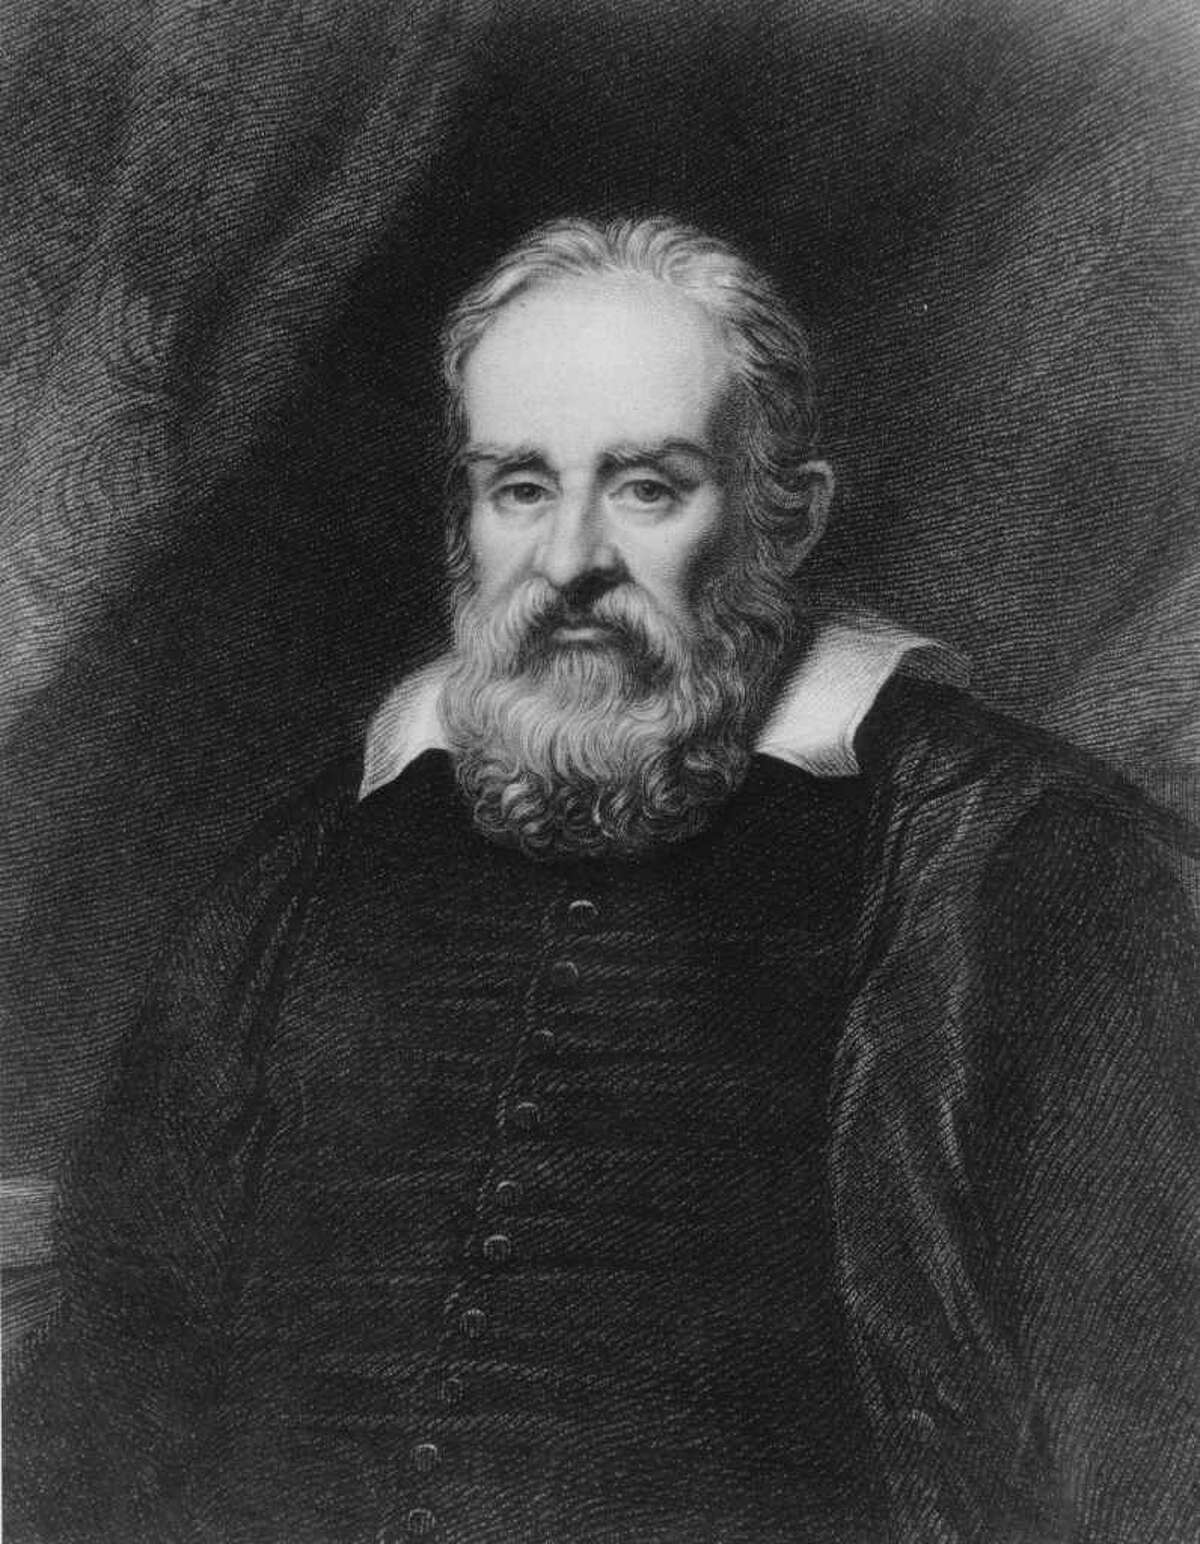 Galileo Galilei In 1633, the great astronomer was sentenced to prison by the Inquisition on suspicion of heresy for defending the Copernican system, which did not put the Earth at the center of the universe. His sentence was commuted to house arrest. Some 350 years later, Pope John Paul II acknowledged that Galileo was right.